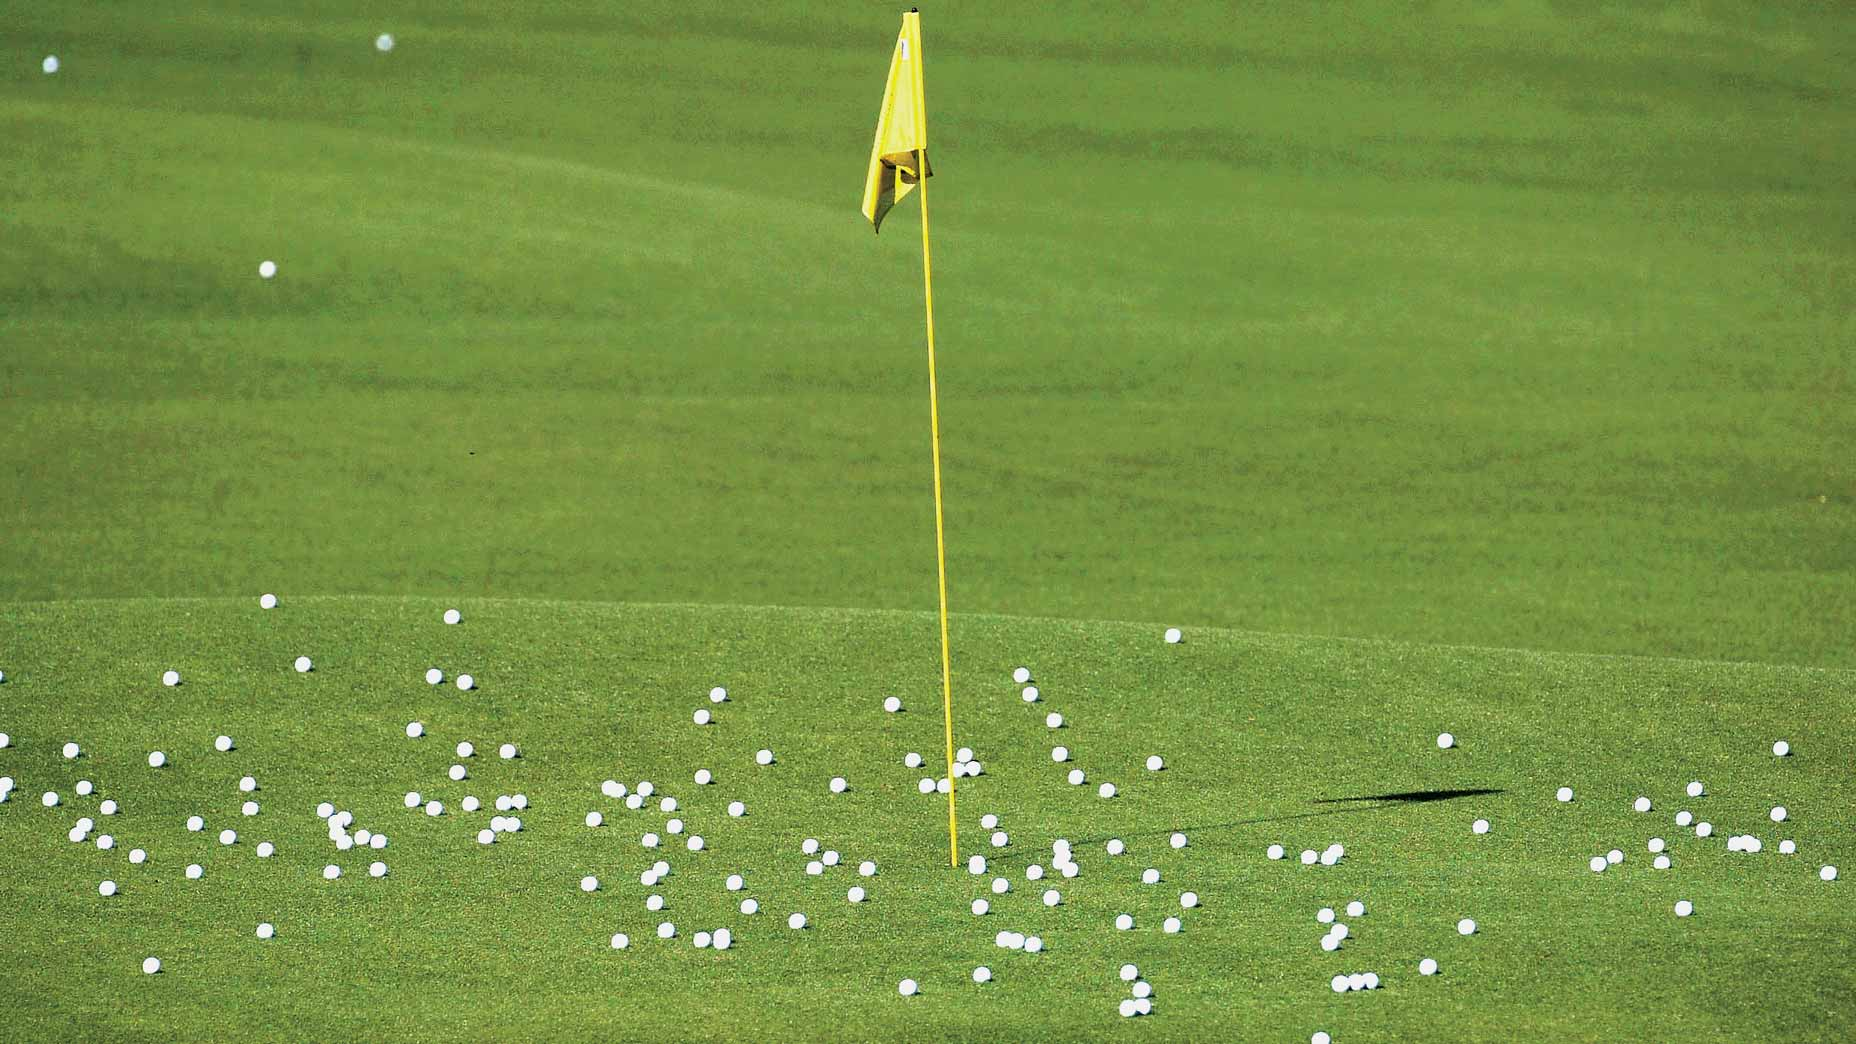 Golf practice balls sit on a practice green around a yellow flagstick